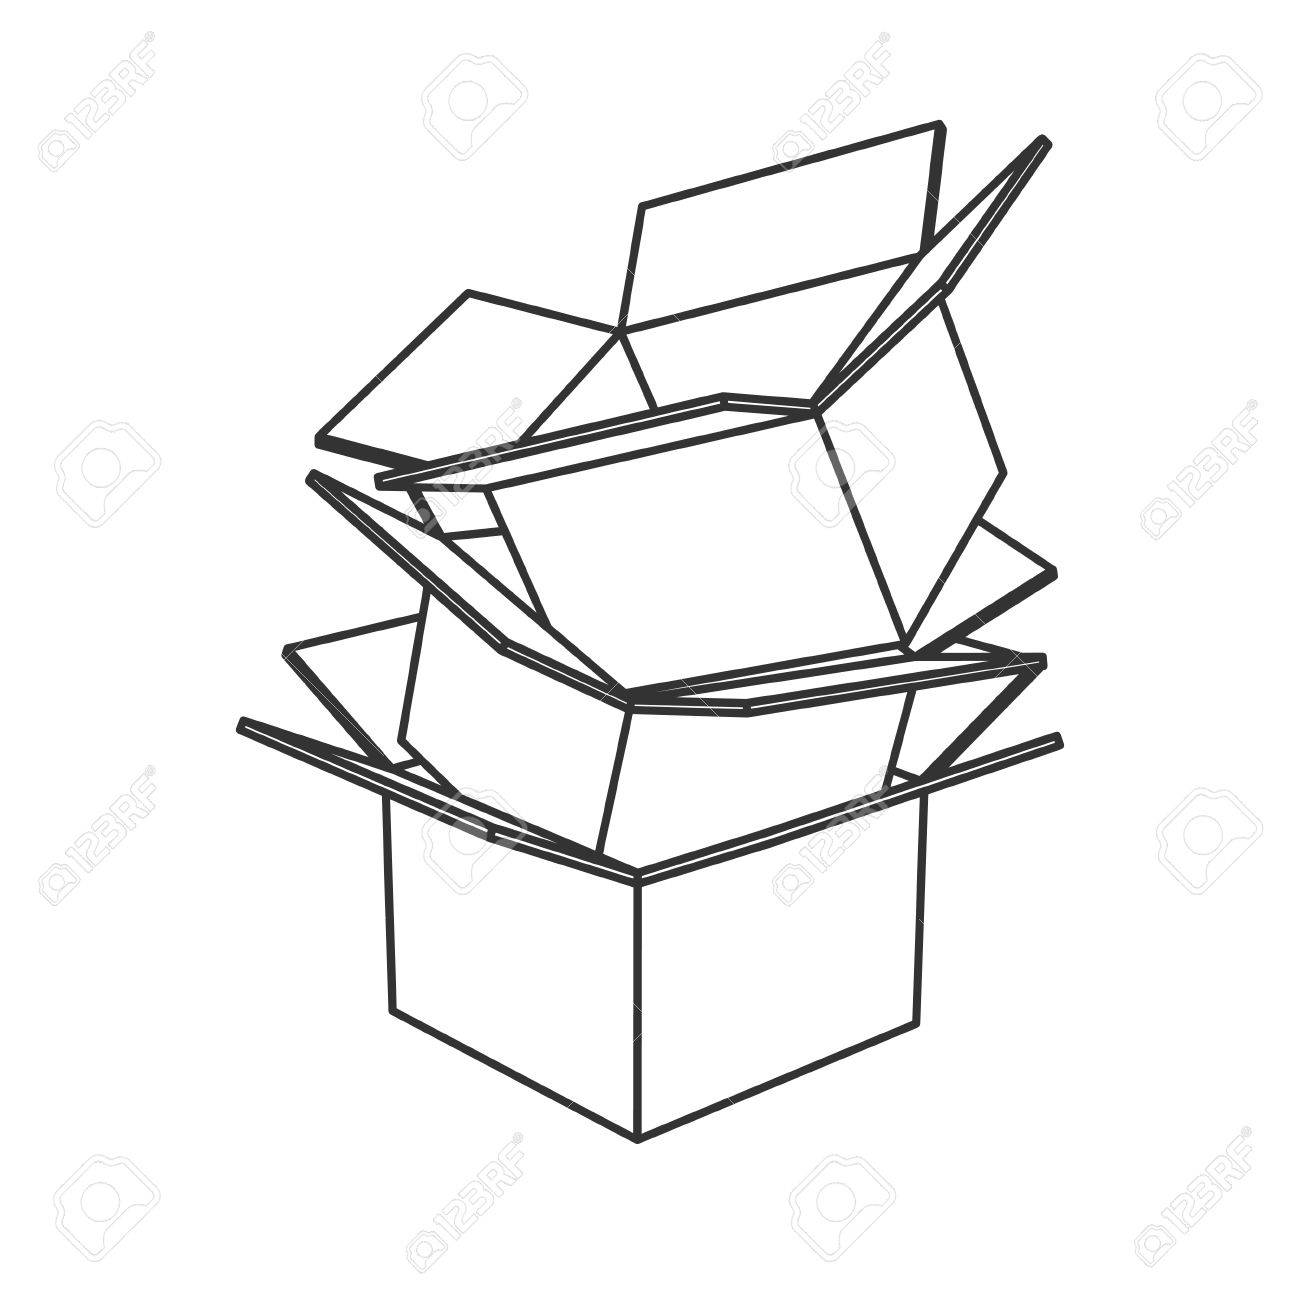 Cardboard box at getdrawings. Boxes clipart line drawing